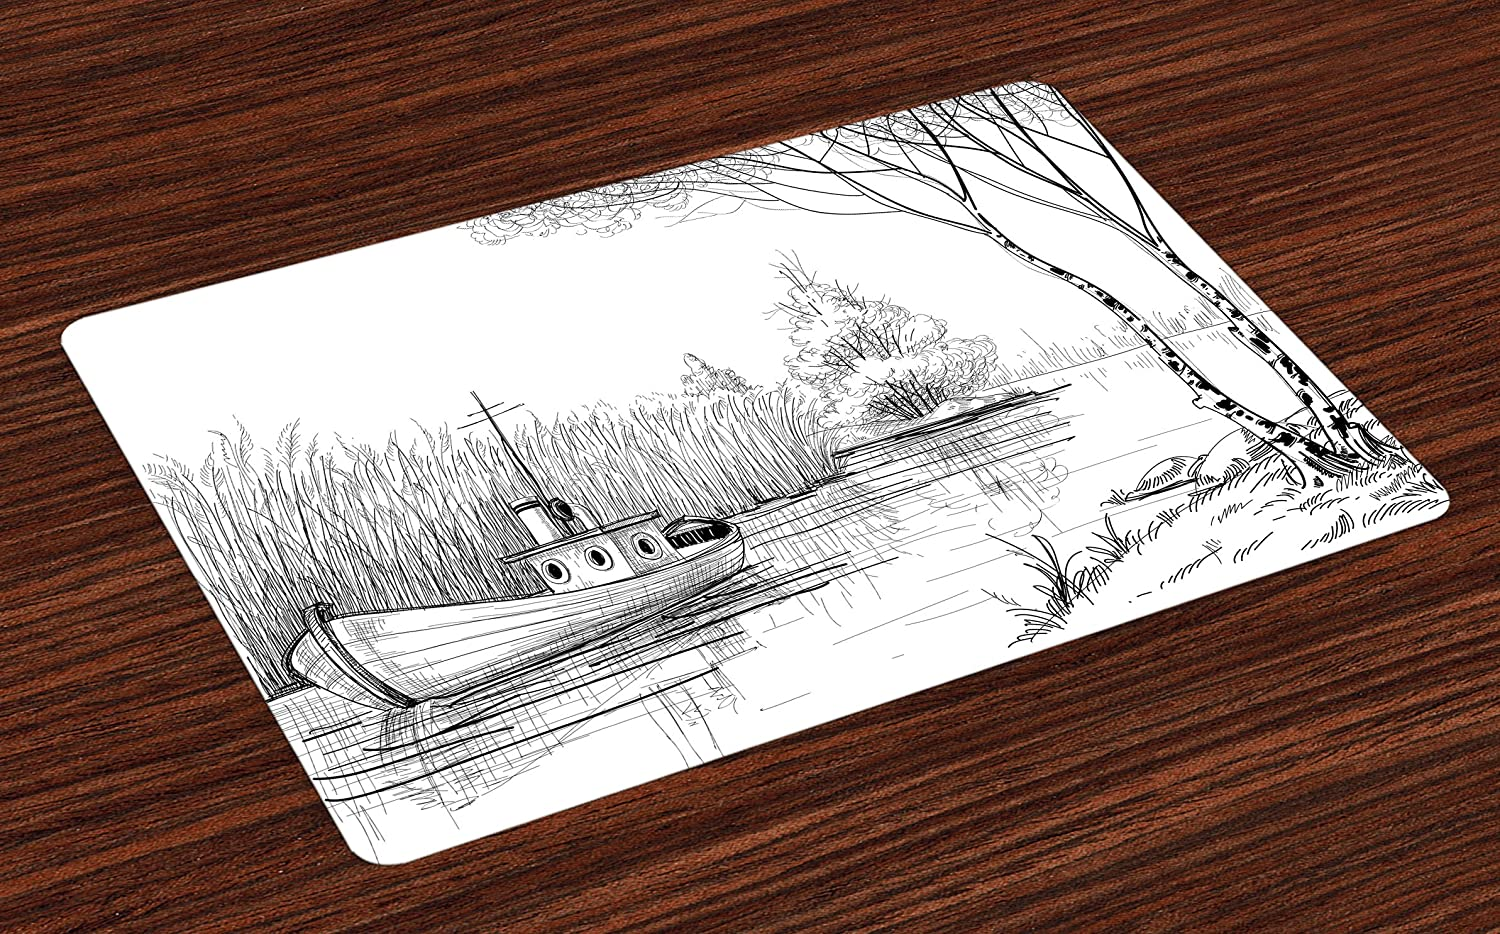 Ambesonne Nature Place Mats Set of 4, Boat on The River by The Water Reeds Fishing Lake Plants Hand Drawn Style Nature, Washable Fabric Placemats for Dining Room Kitchen Table Decor, Black White